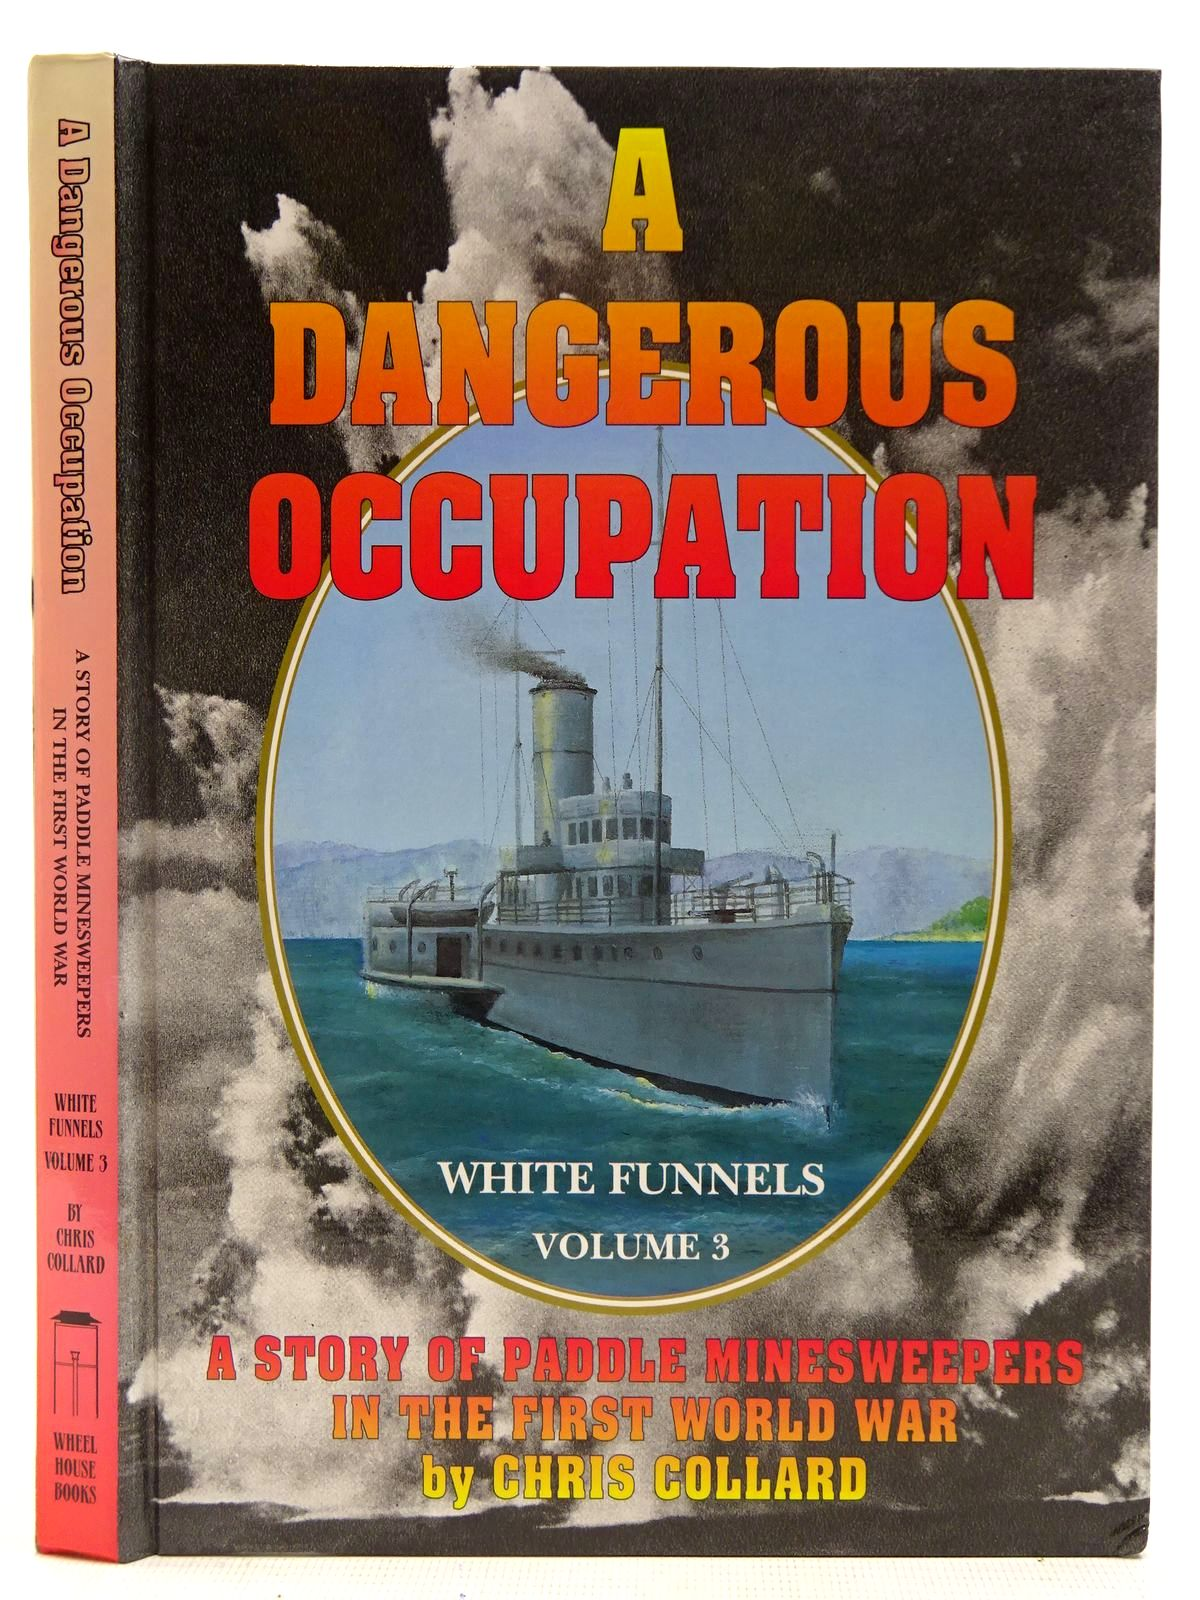 Photo of A DANGEROUS OCCUPATION WHITE FUNNELS VOLUME 3 written by Collard, Chris published by Wheelhouse Books (STOCK CODE: 2128153)  for sale by Stella & Rose's Books